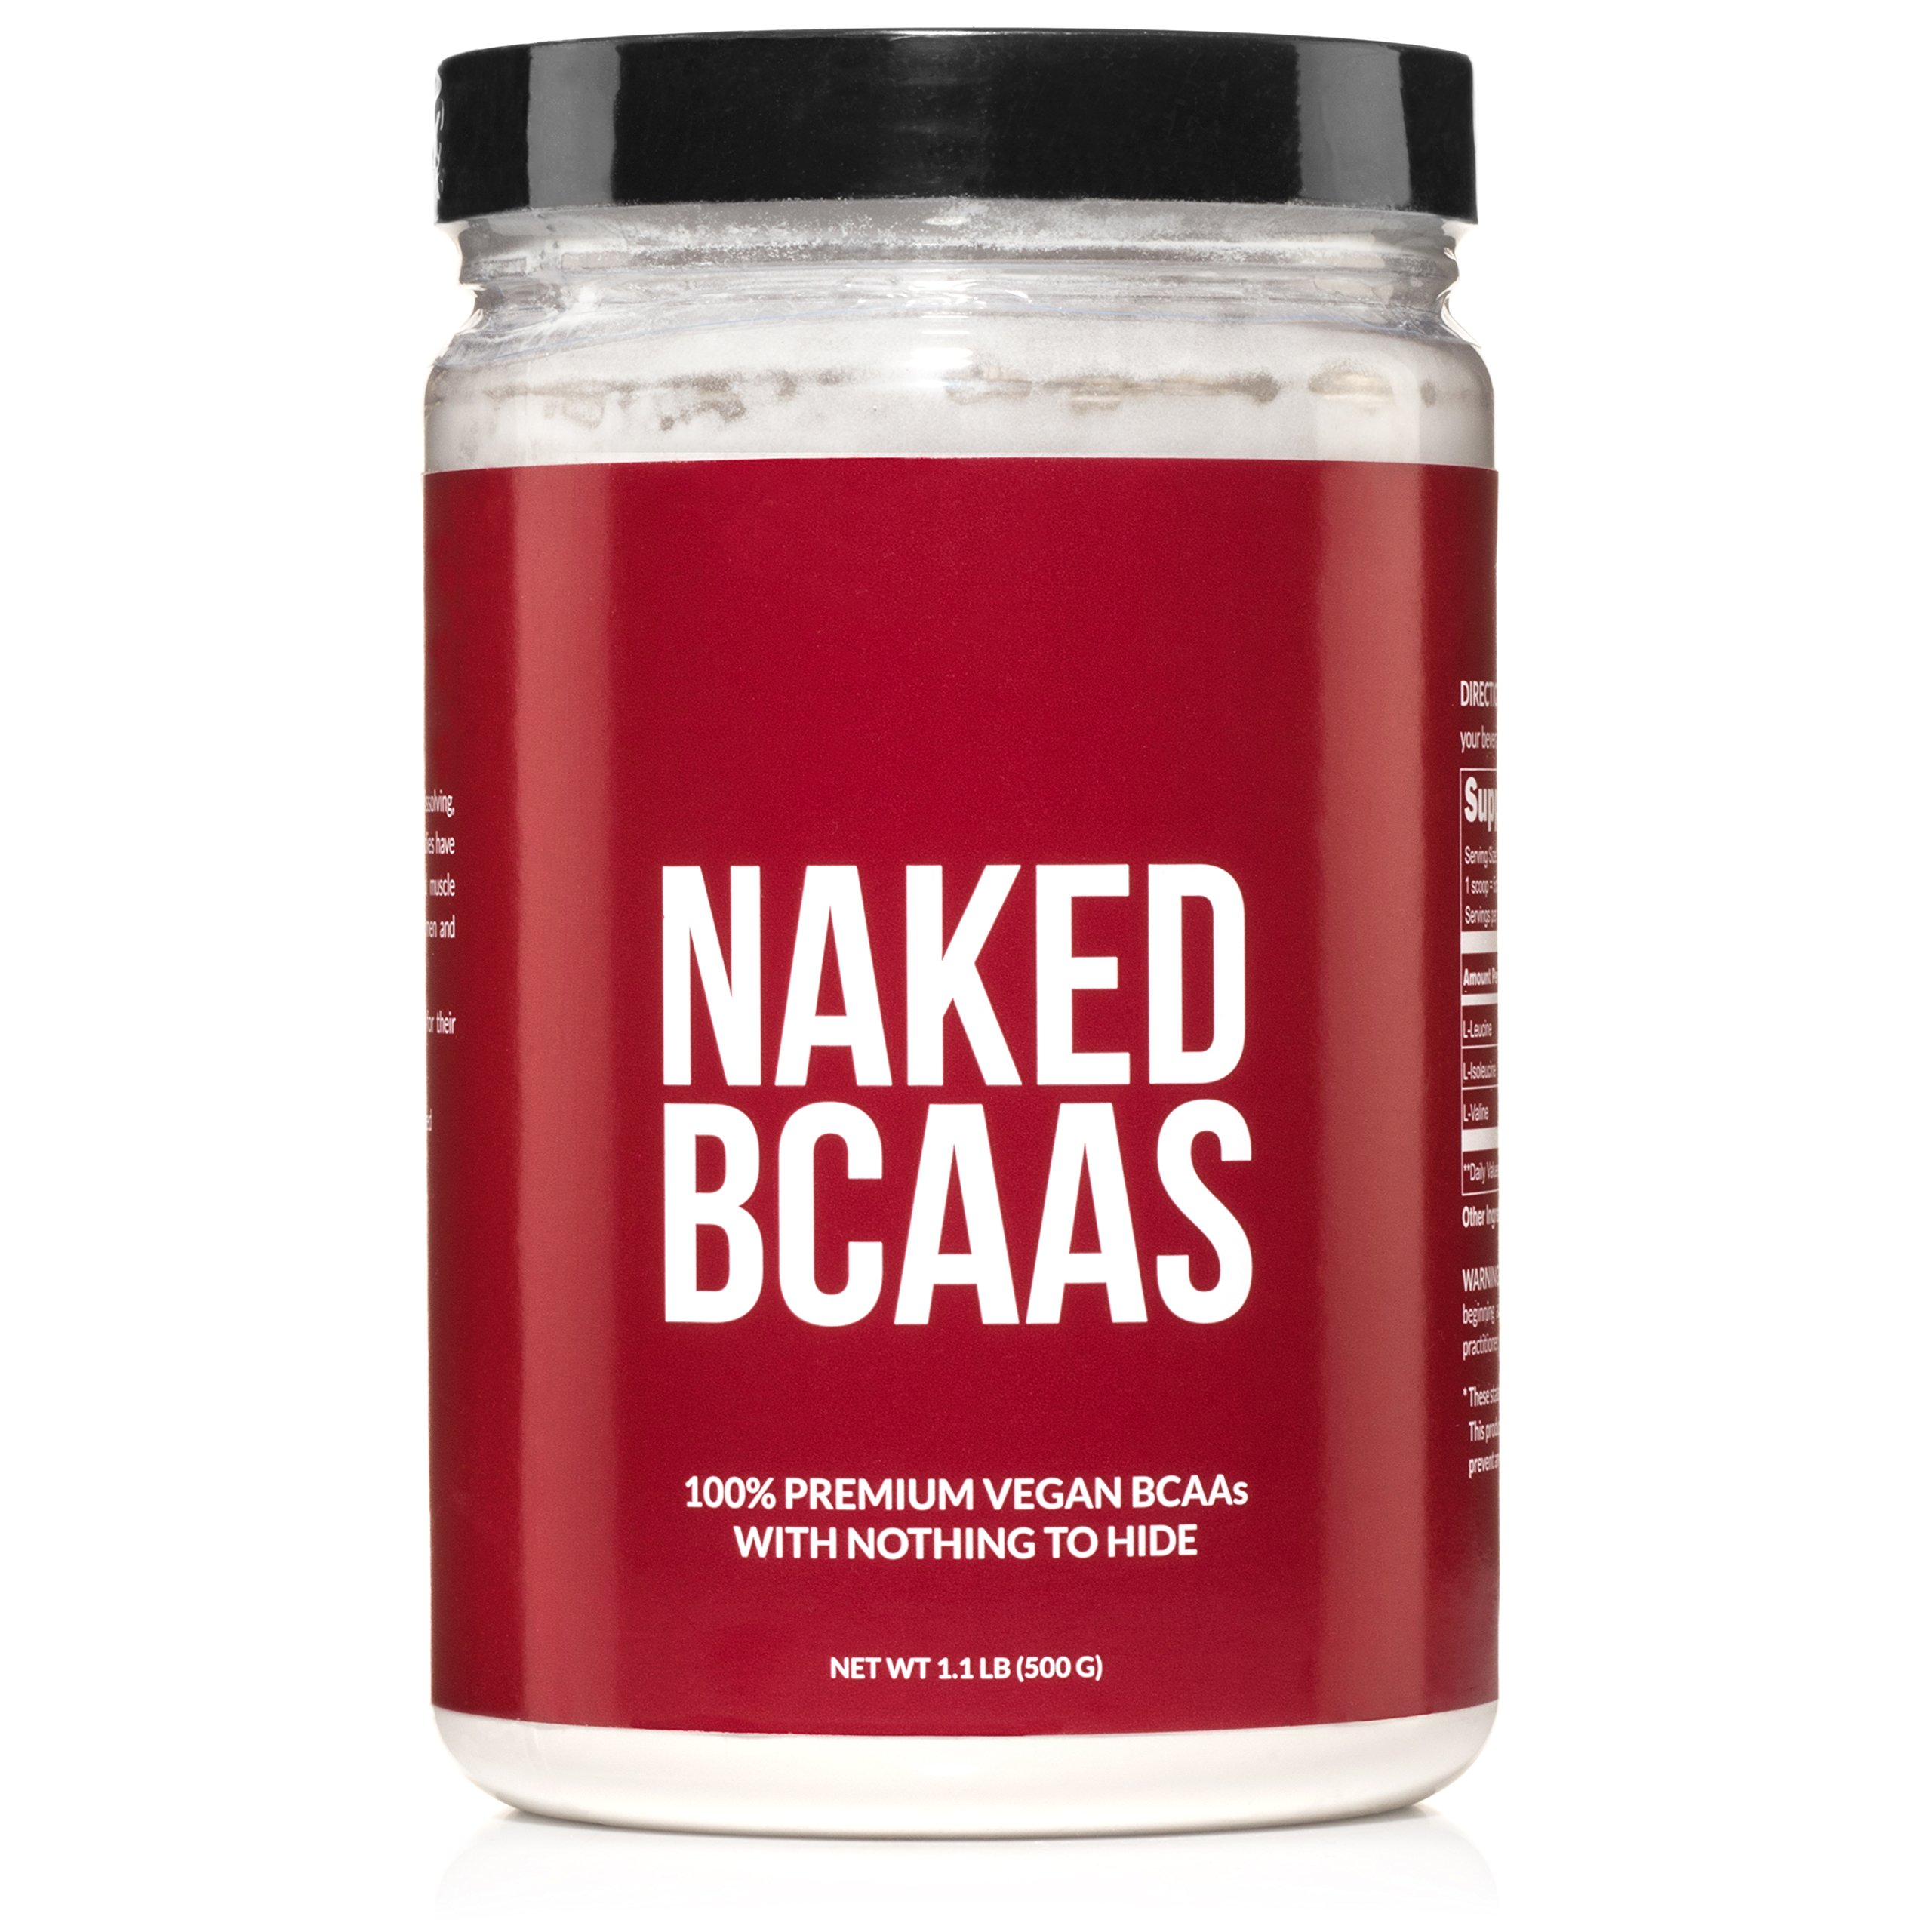 NAKED BCAAs Amino Acids Powder - 100 Servings - Vegan Unflavored Branched Chain Amino Acids 500 grams | 100% Pure 2:1:1 Formula - Instantized All Natural BCAA Powder Supplement to Boost Muscle Growth